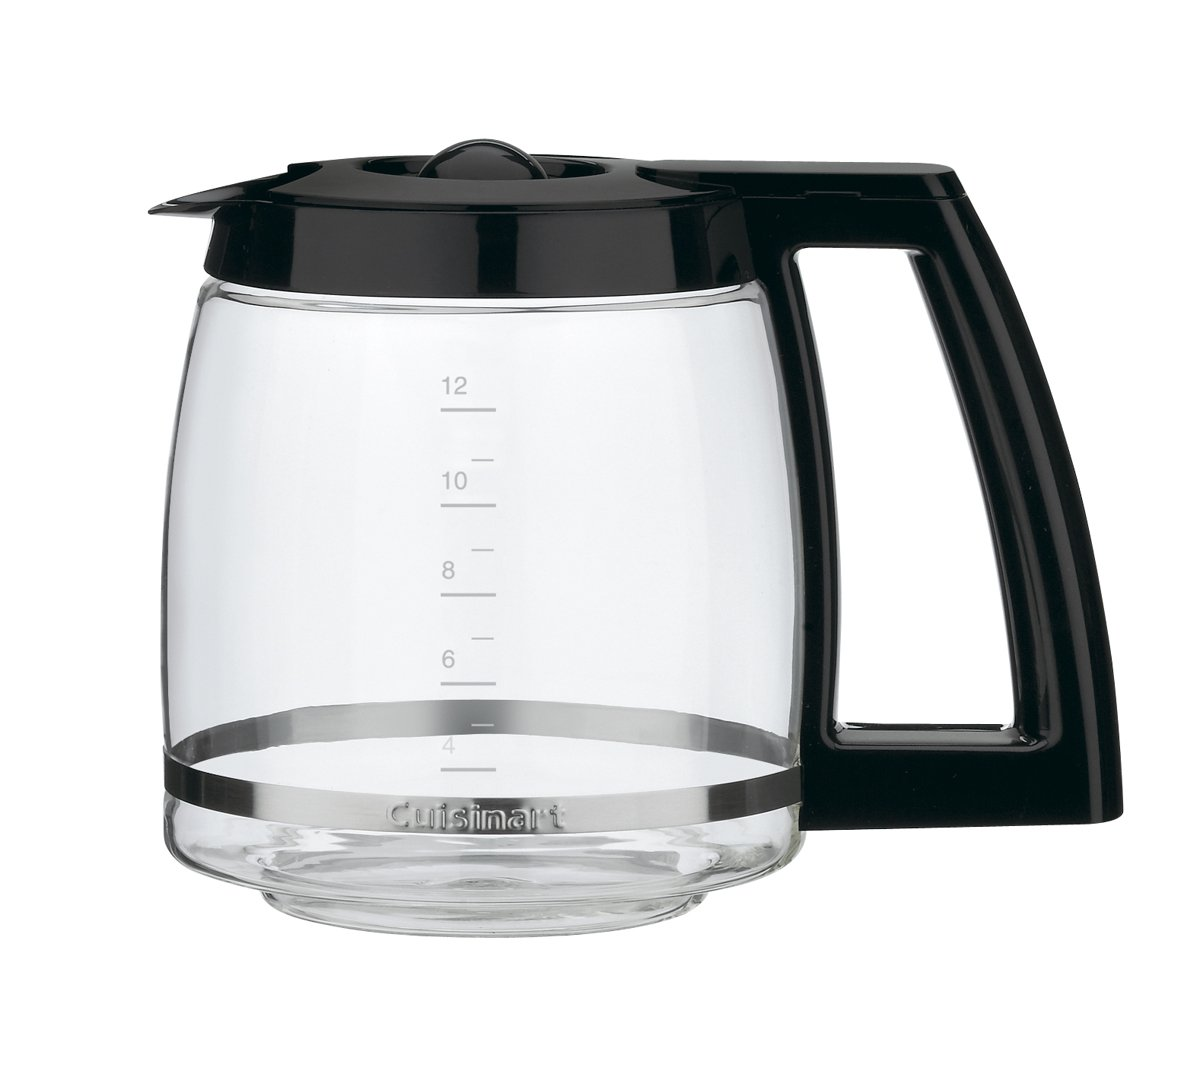 Conair Cuisinart Grind & Brew DGB-700BC 12 Cup Coffeemaker (Black/Brushed Chrome) by Cuisinart (Image #2)